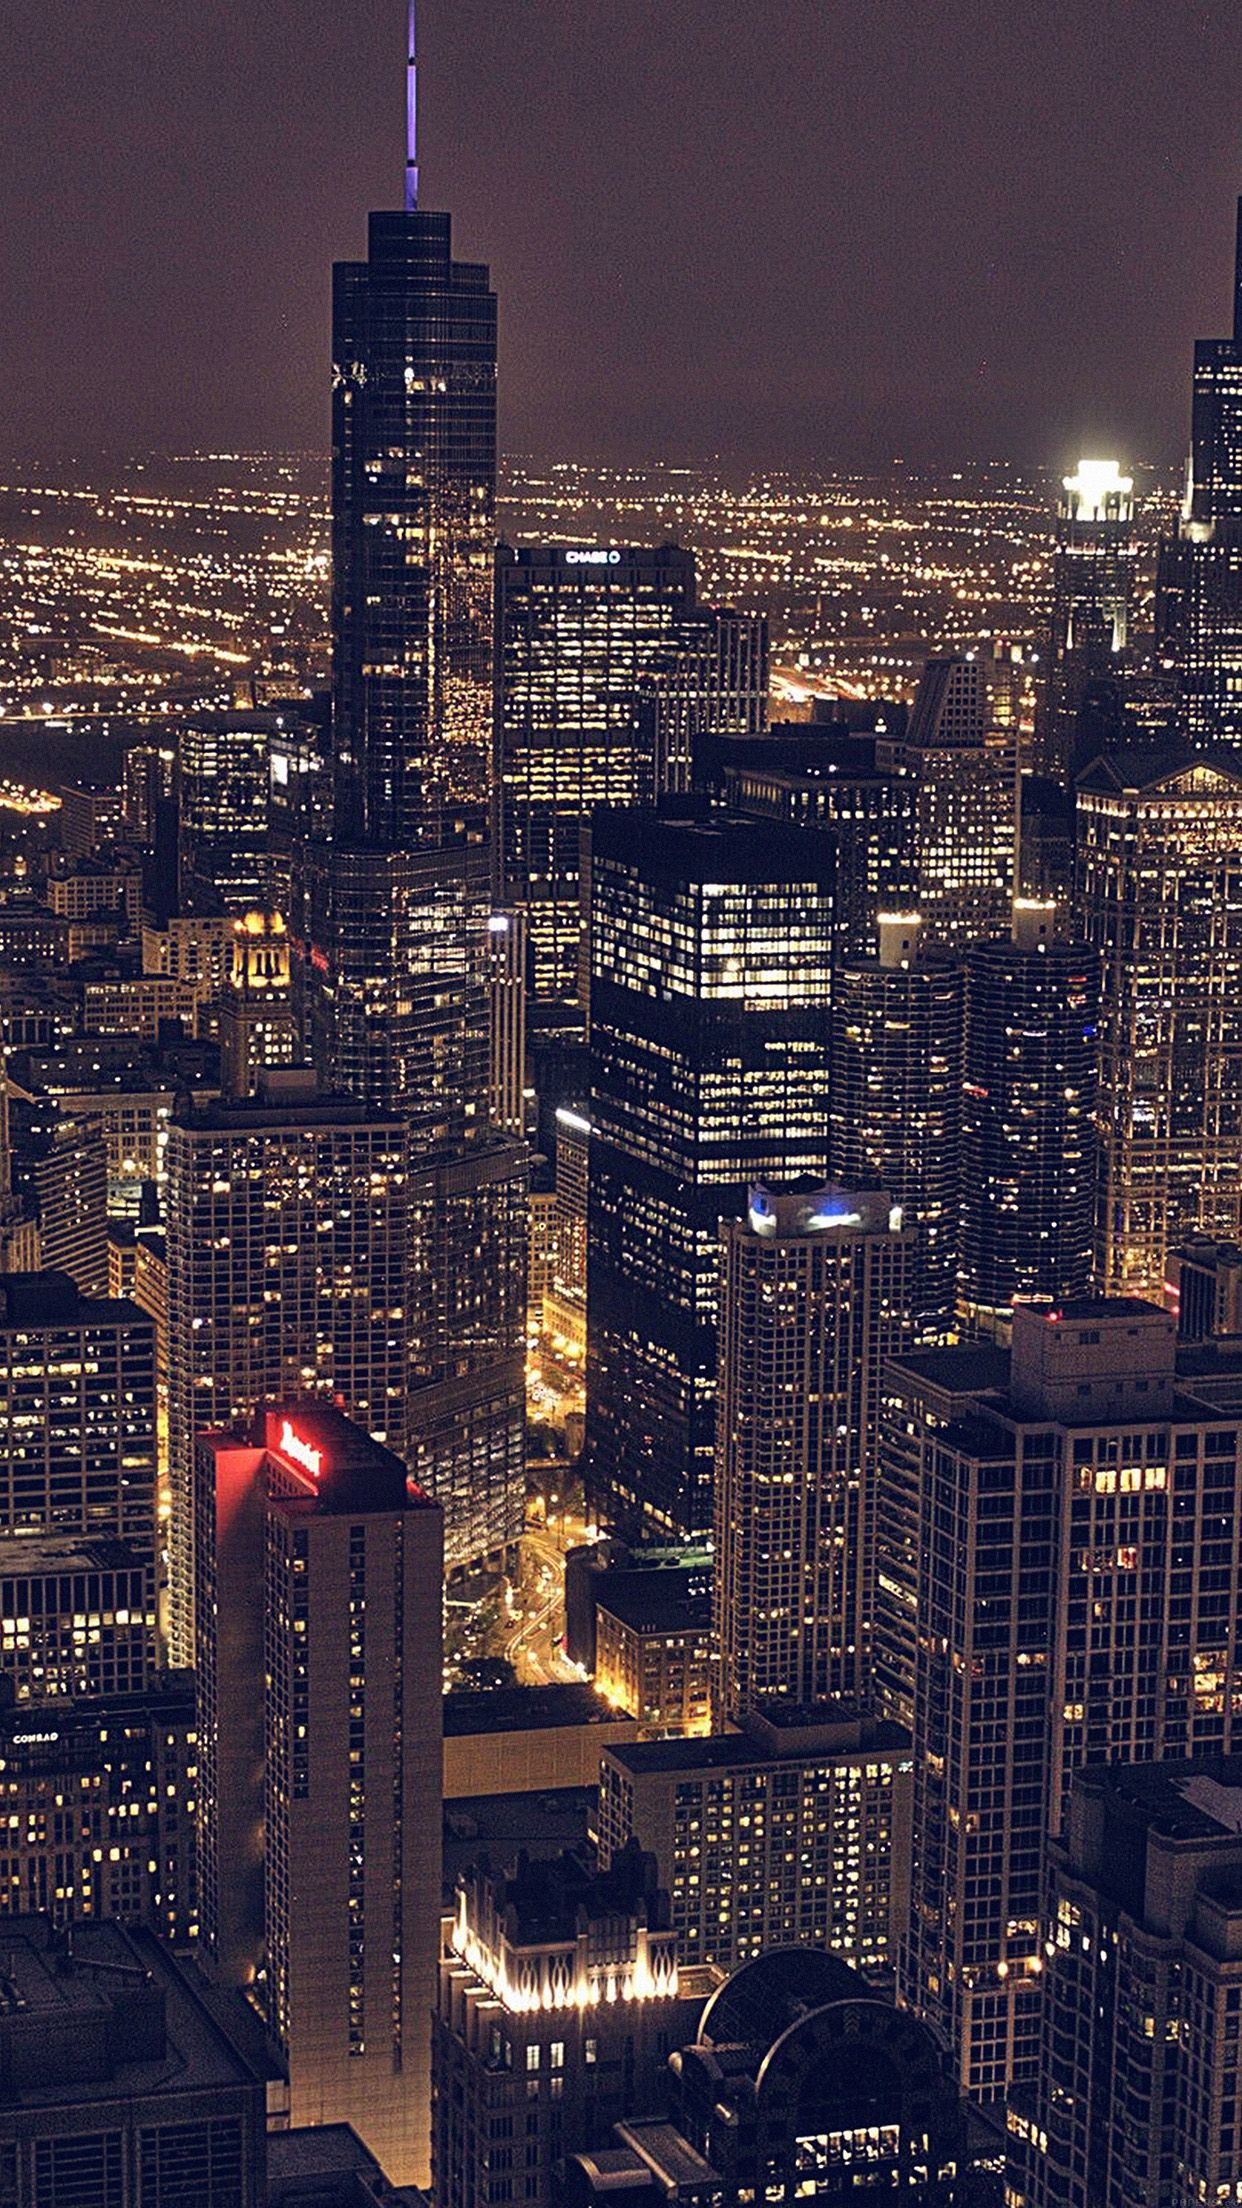 Chicago City Aertial View Night Iphone 6 Plus Hd Wallpaper Whatsapp Wallpapers Hd Fotografia Paisaje Urbano Iphone Fondos De Pantalla